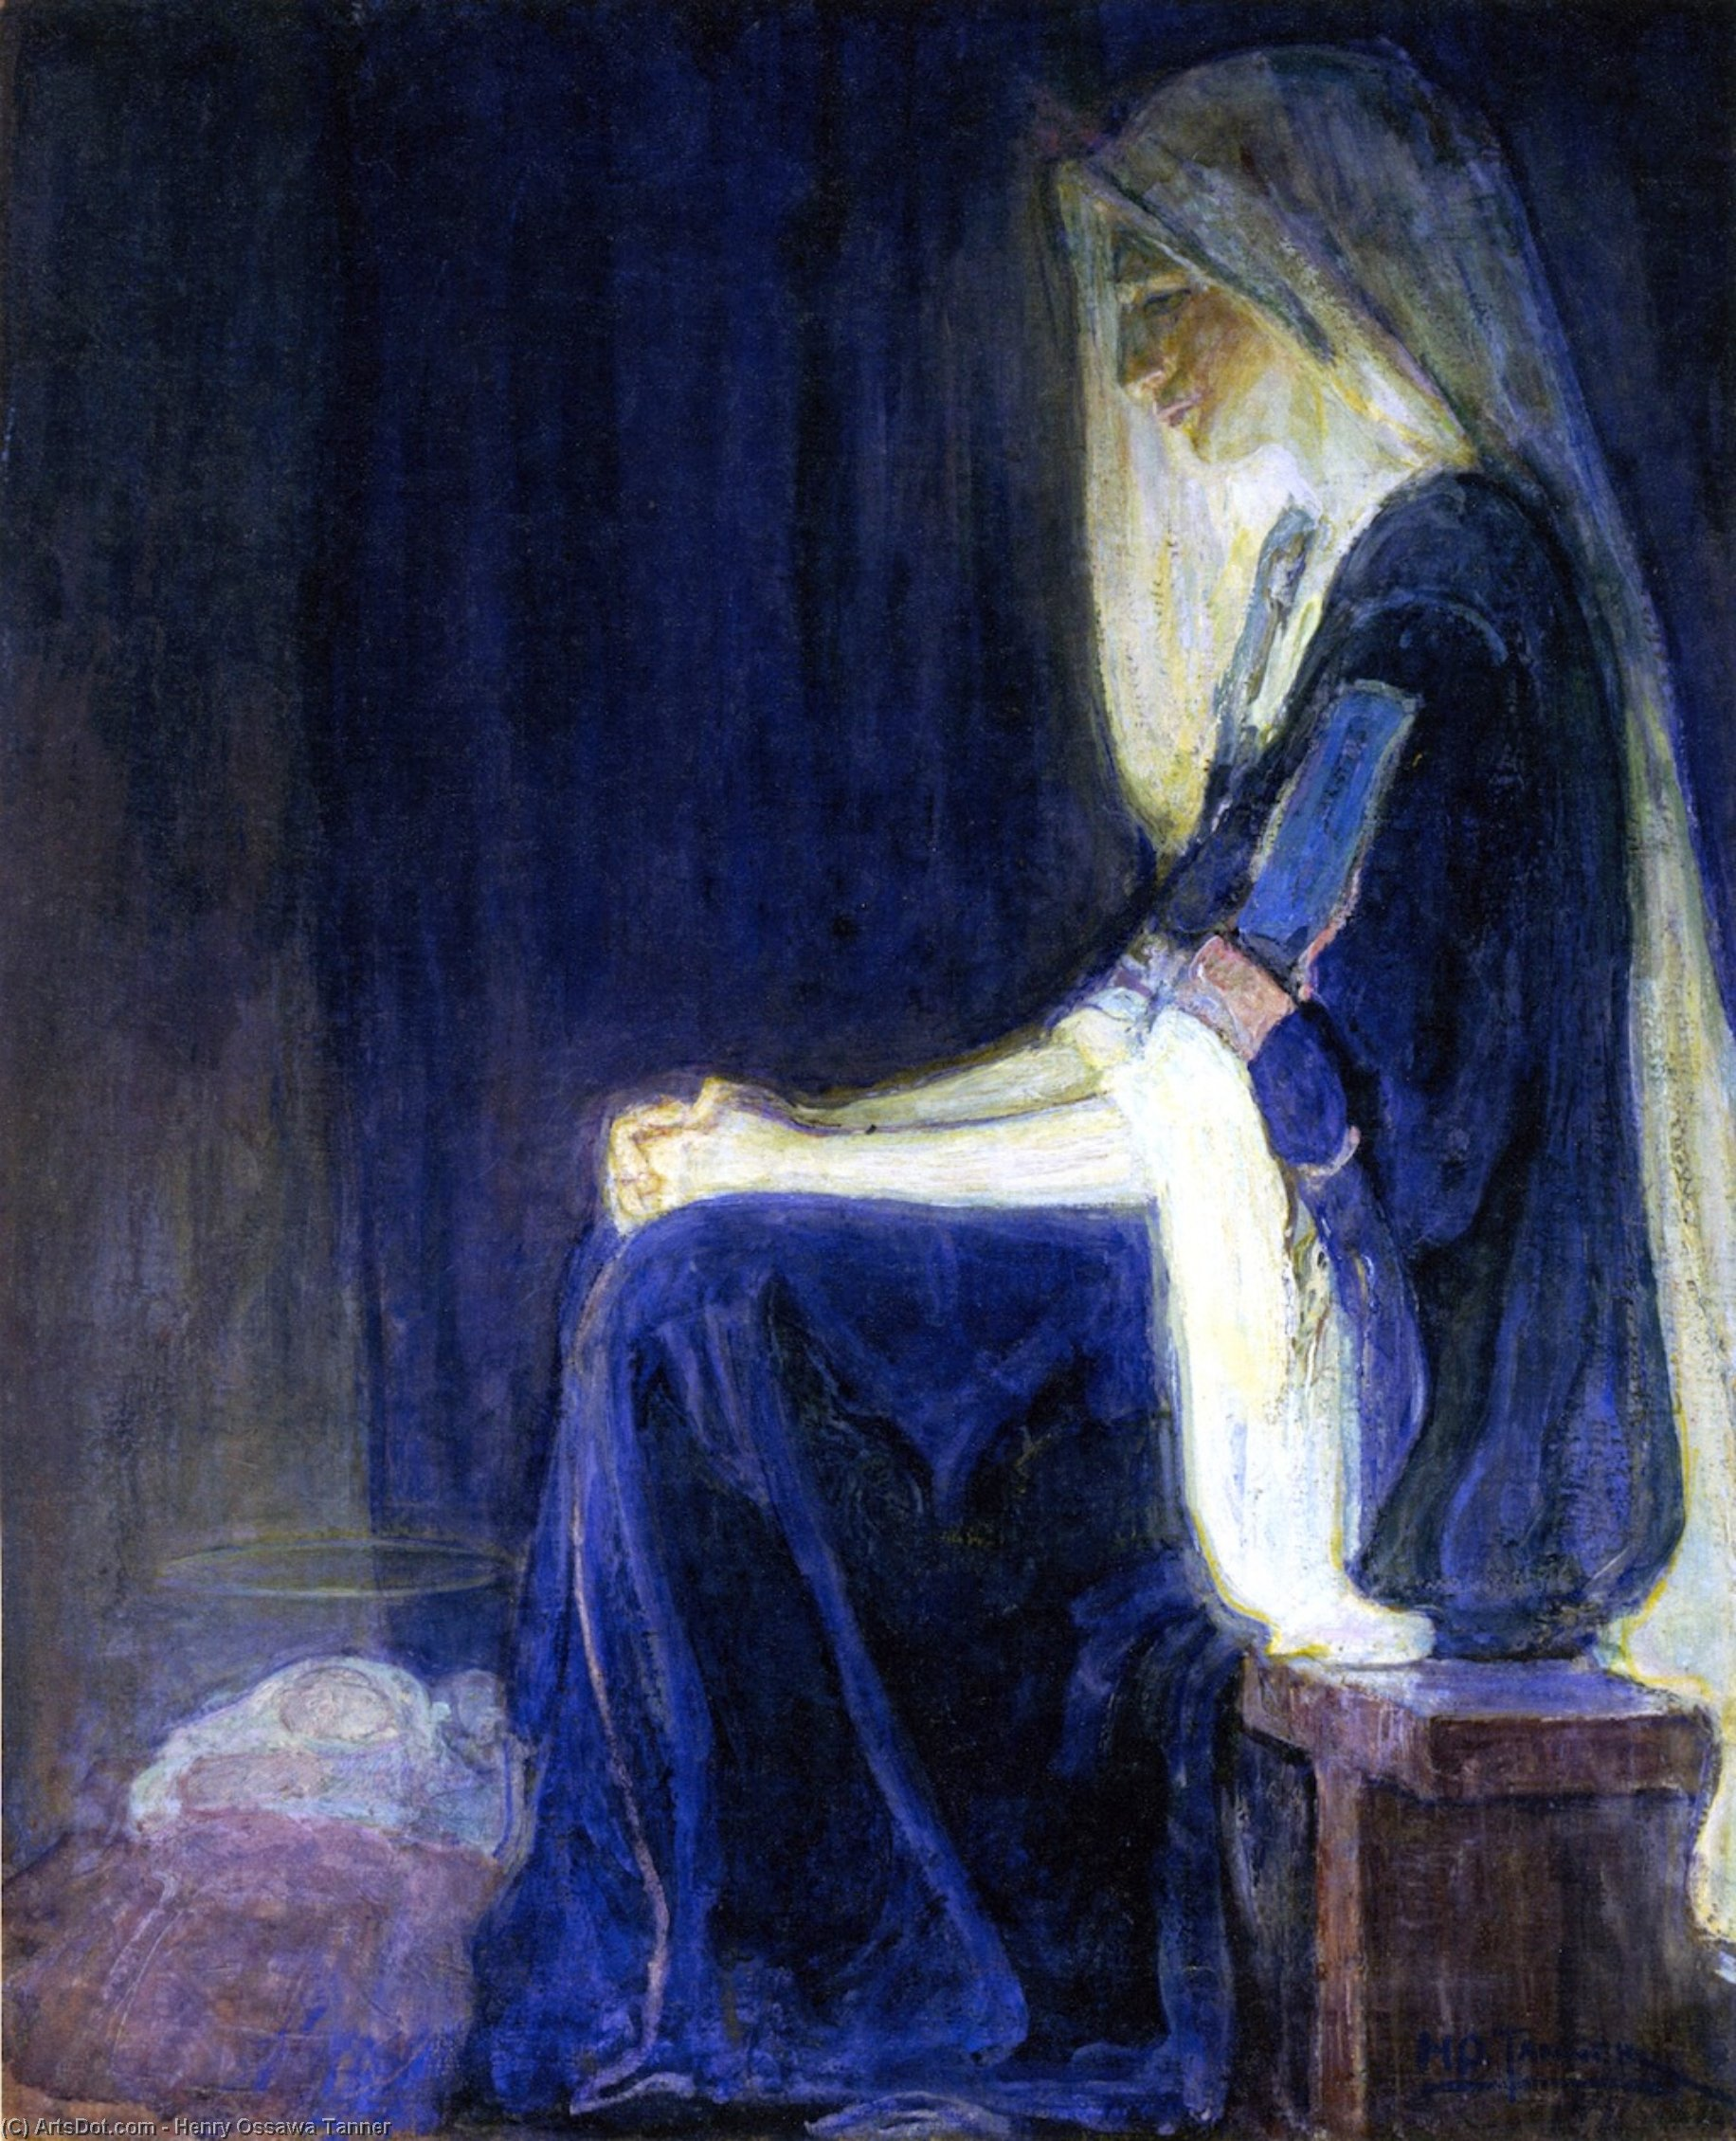 marie, huile sur toile de Henry Ossawa Tanner (1859-1937, United States)